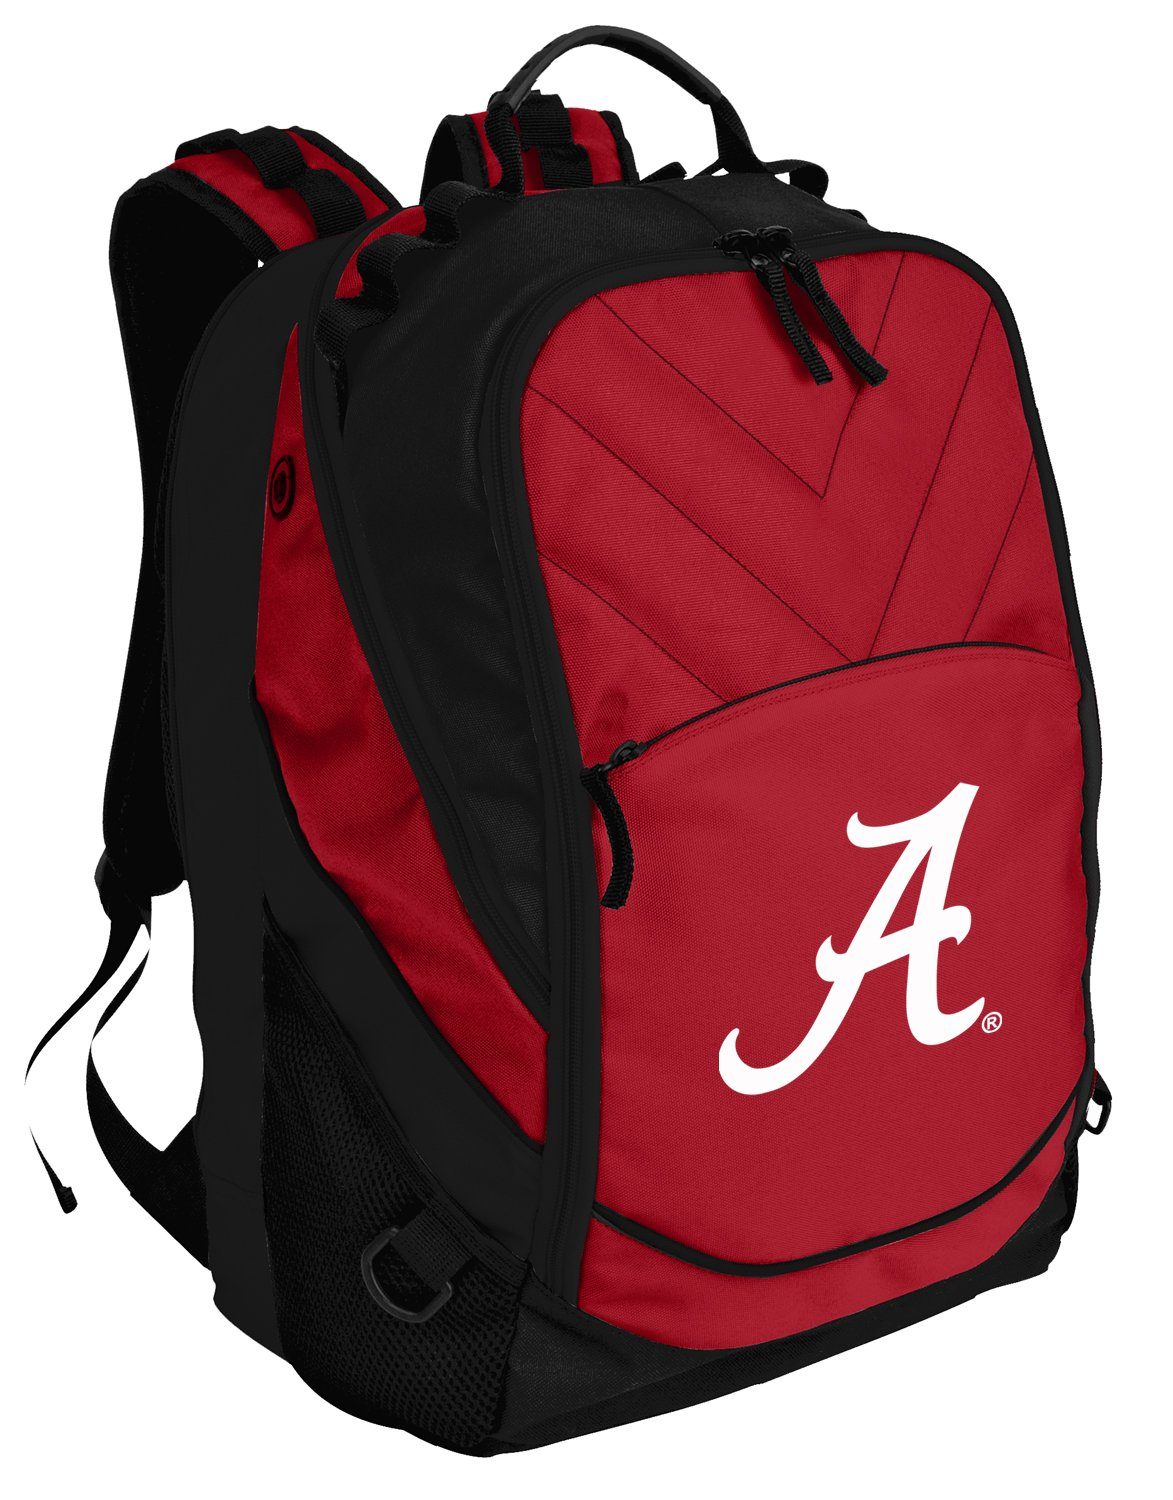 Broad Bay Alabama Crimson Tide Backpack Red UA University of Alabama Laptop Computer Bags by Broad Bay (Image #4)